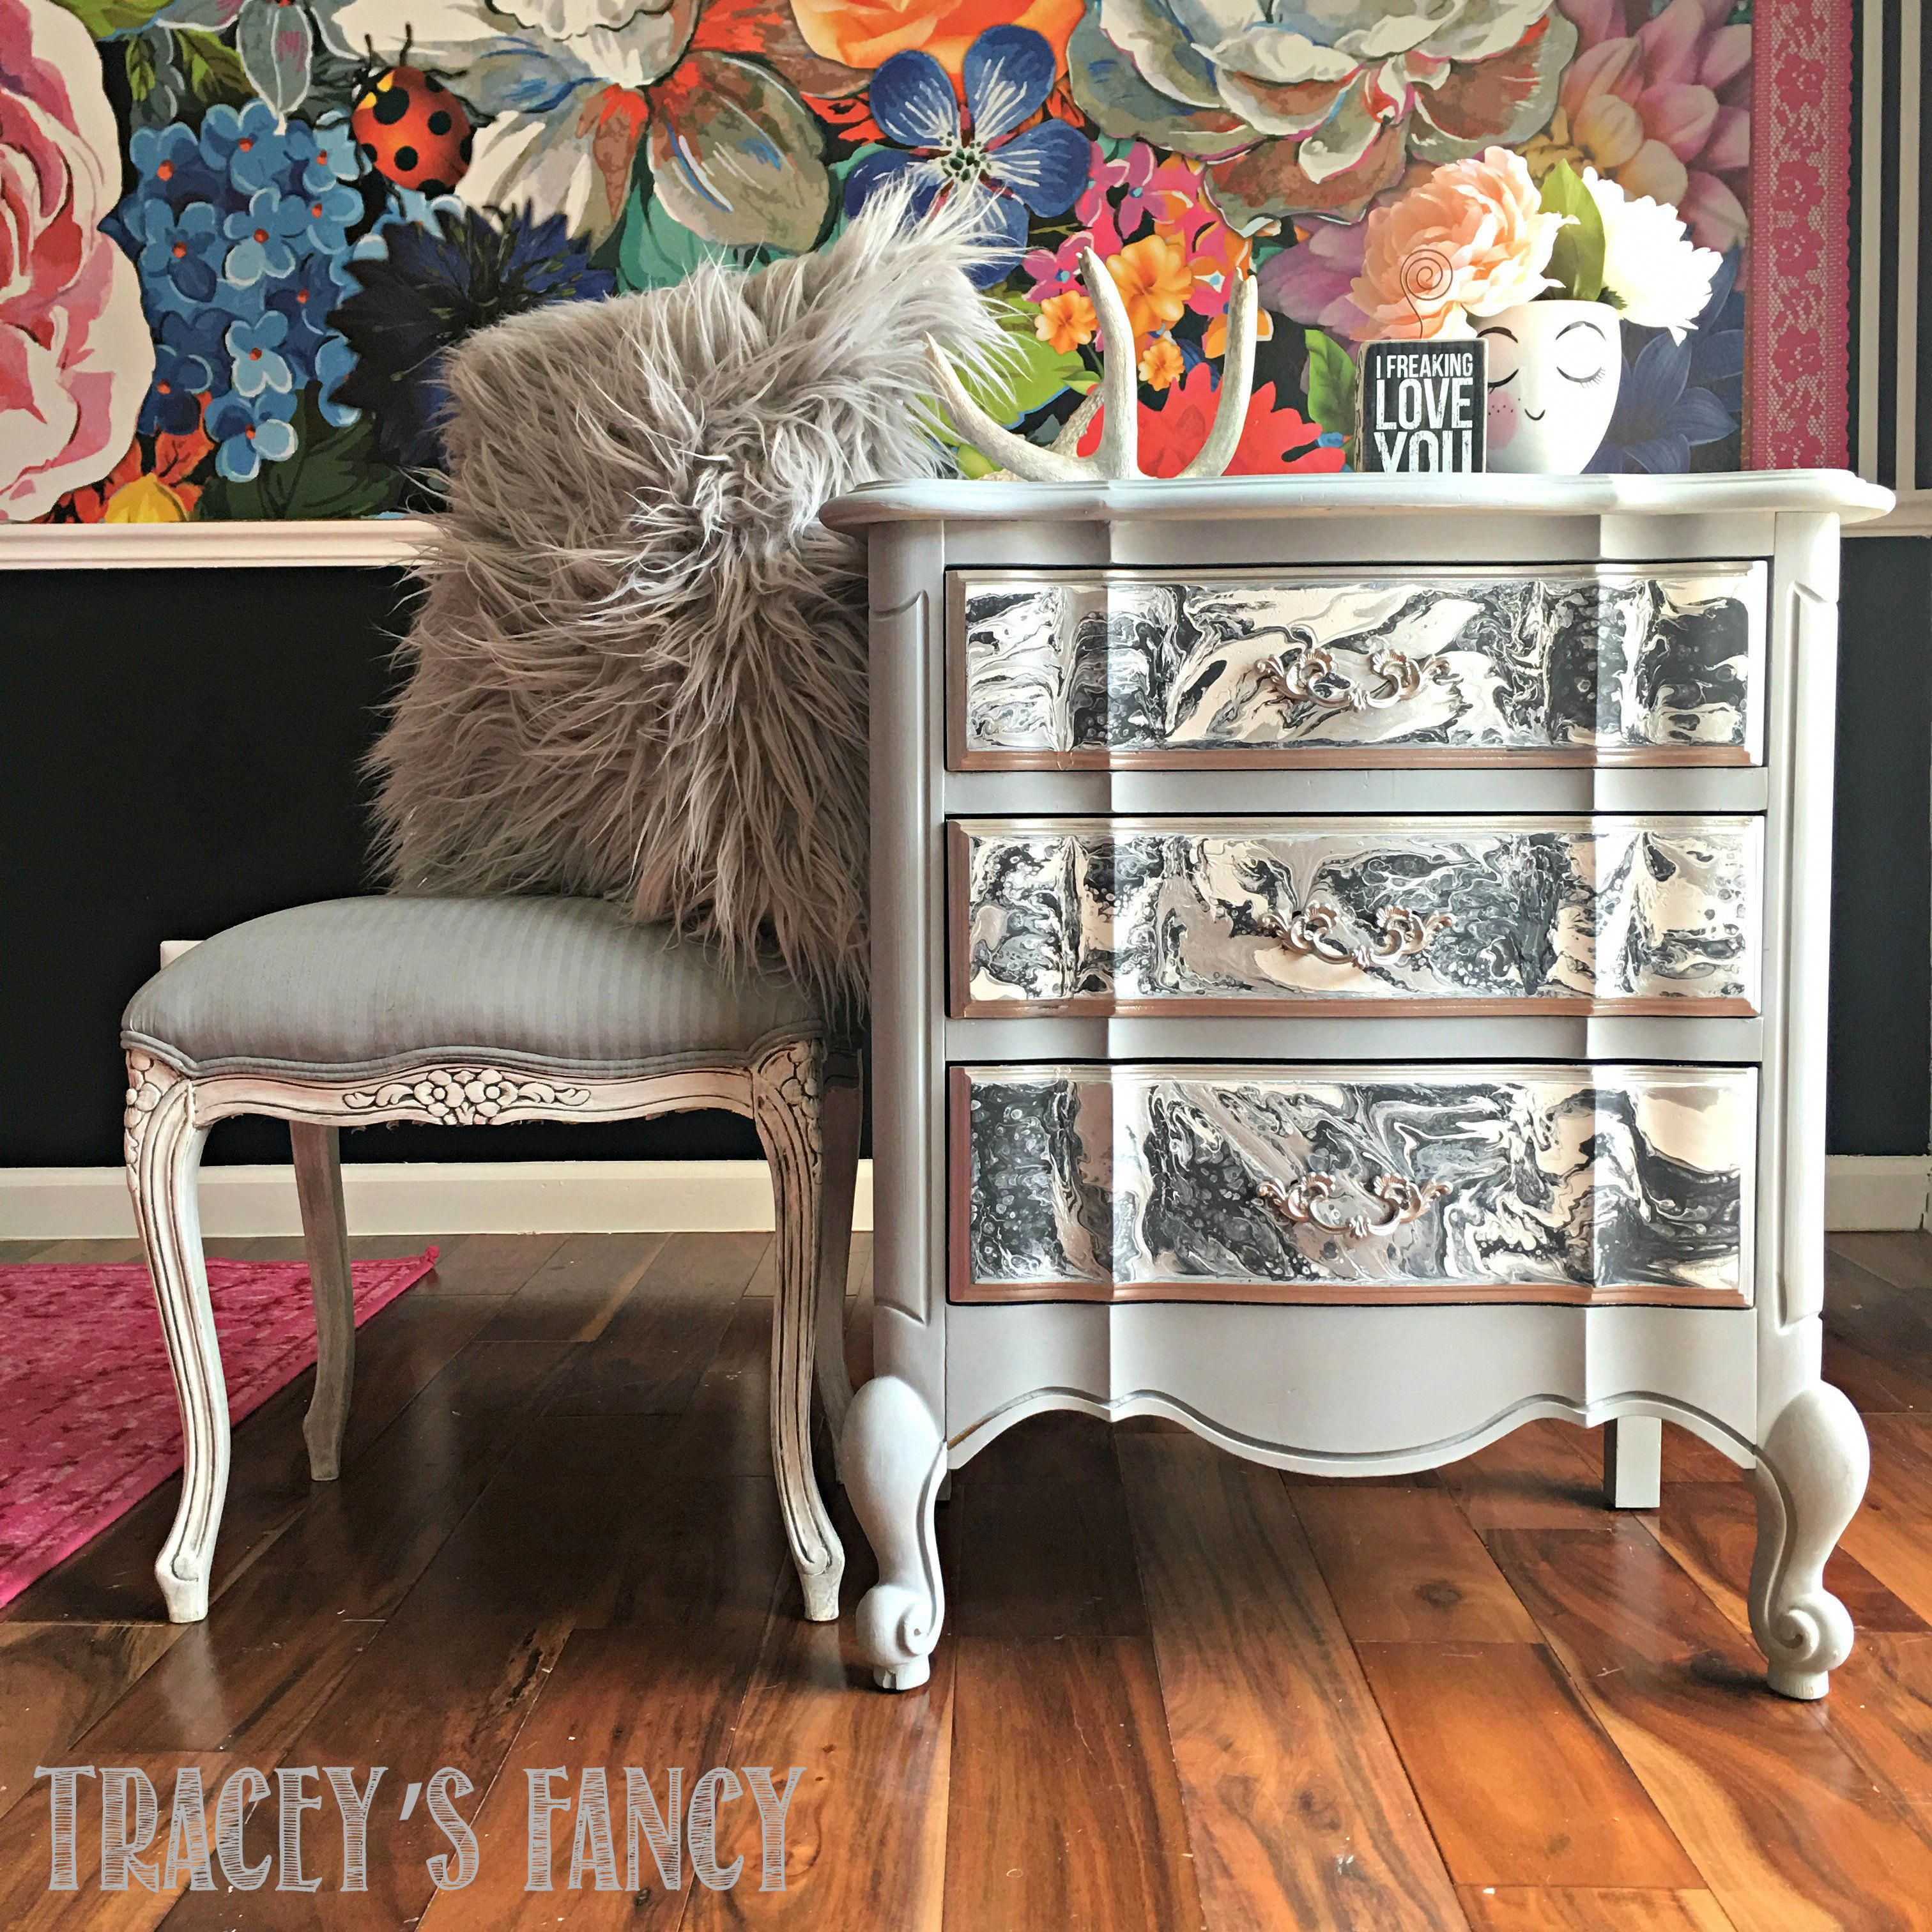 Easy Color Pour on Furniture Tutorial Painting Tutorials